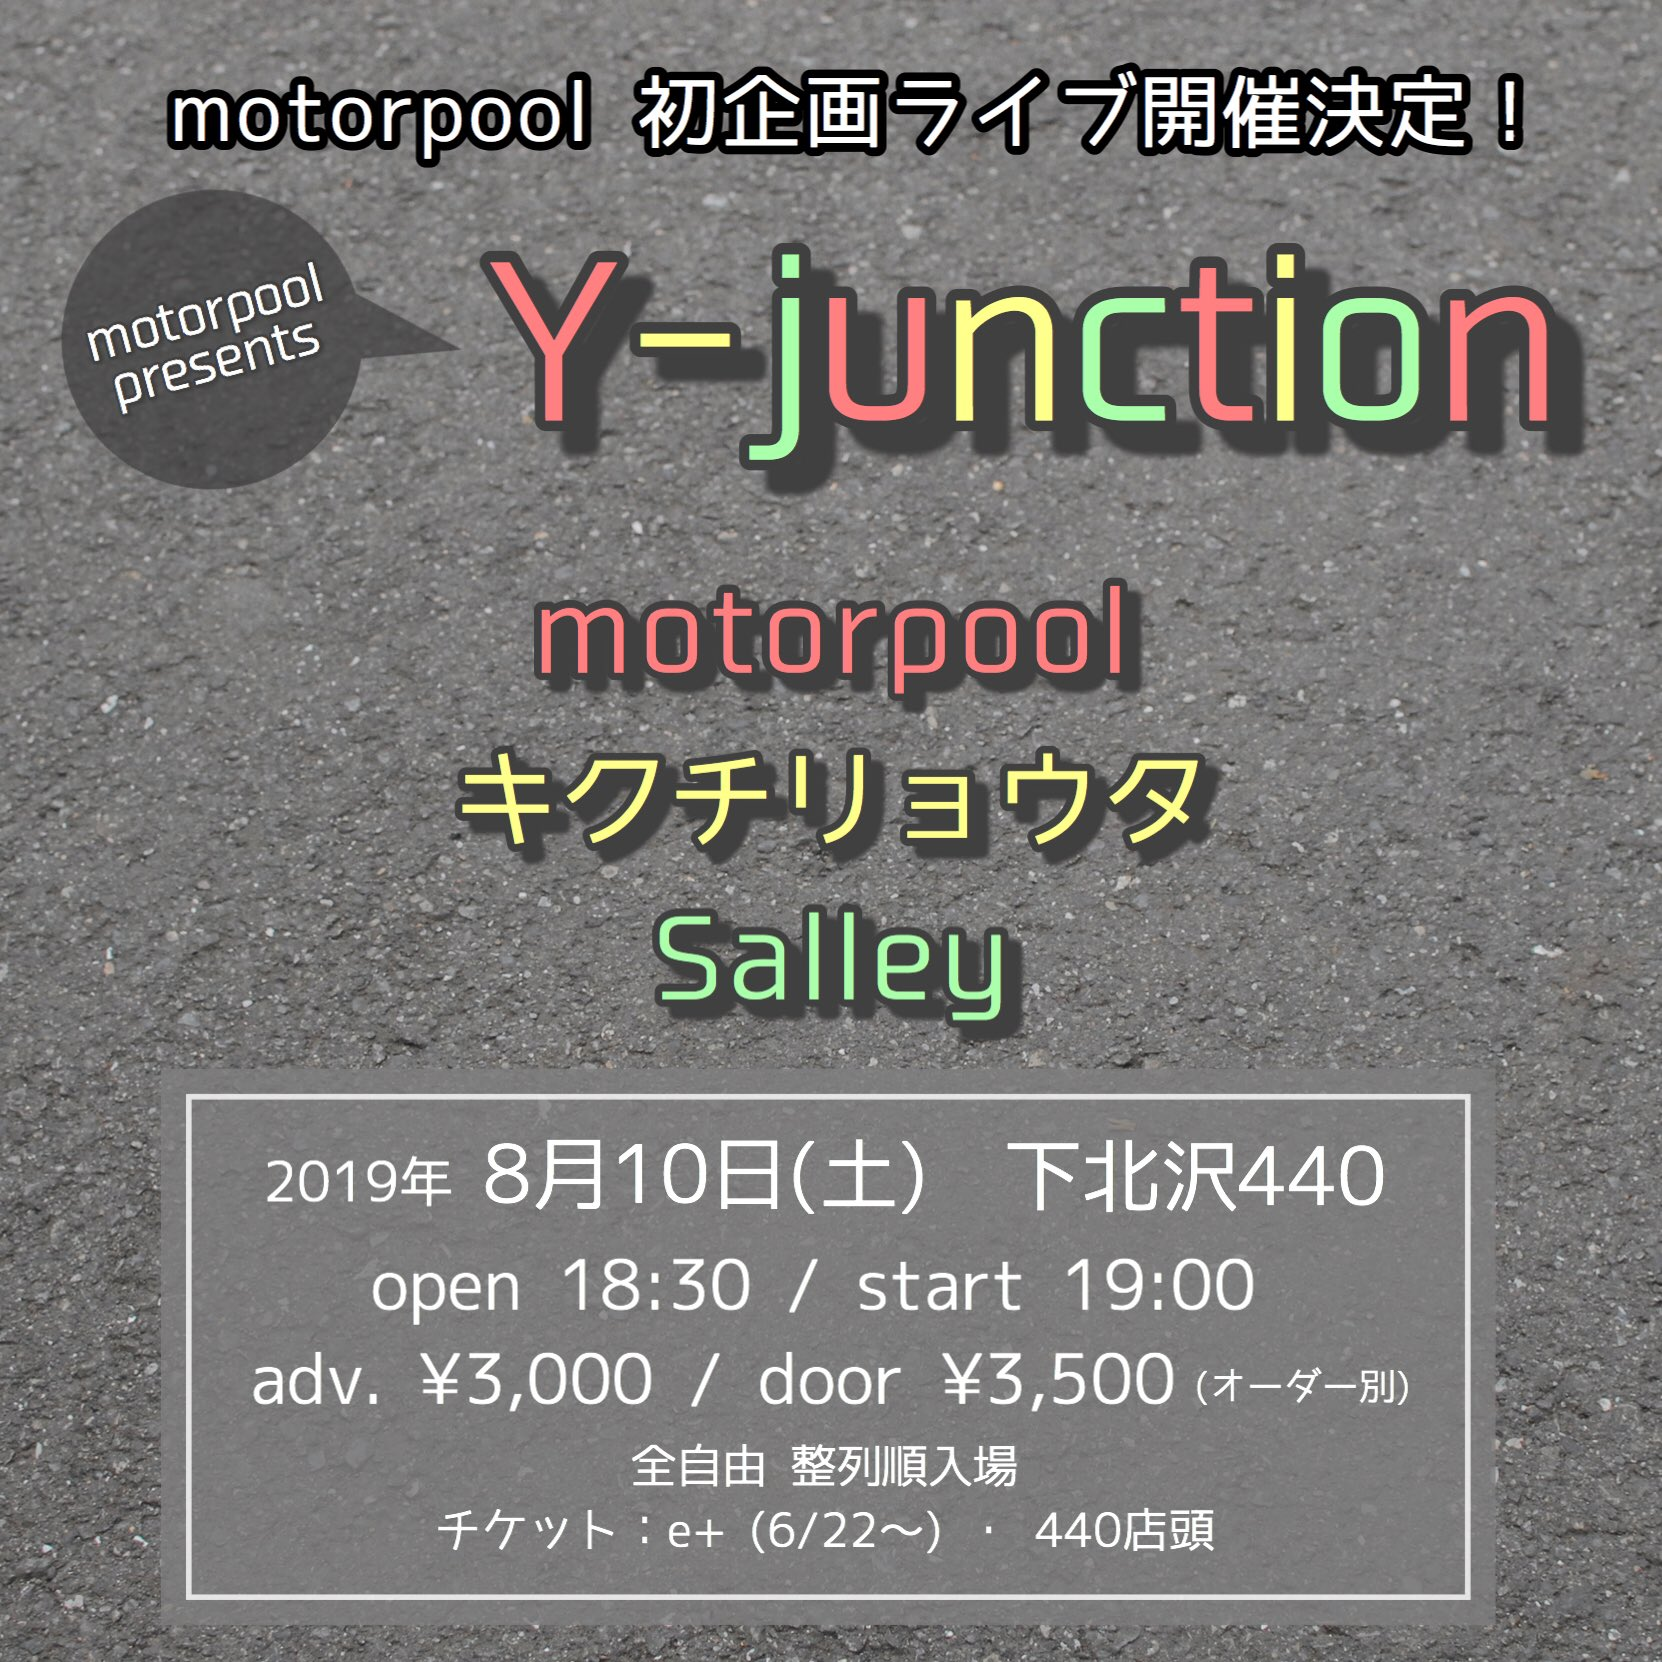 【LIVE】2019年8月10日(土)motorpool presents Y-junction